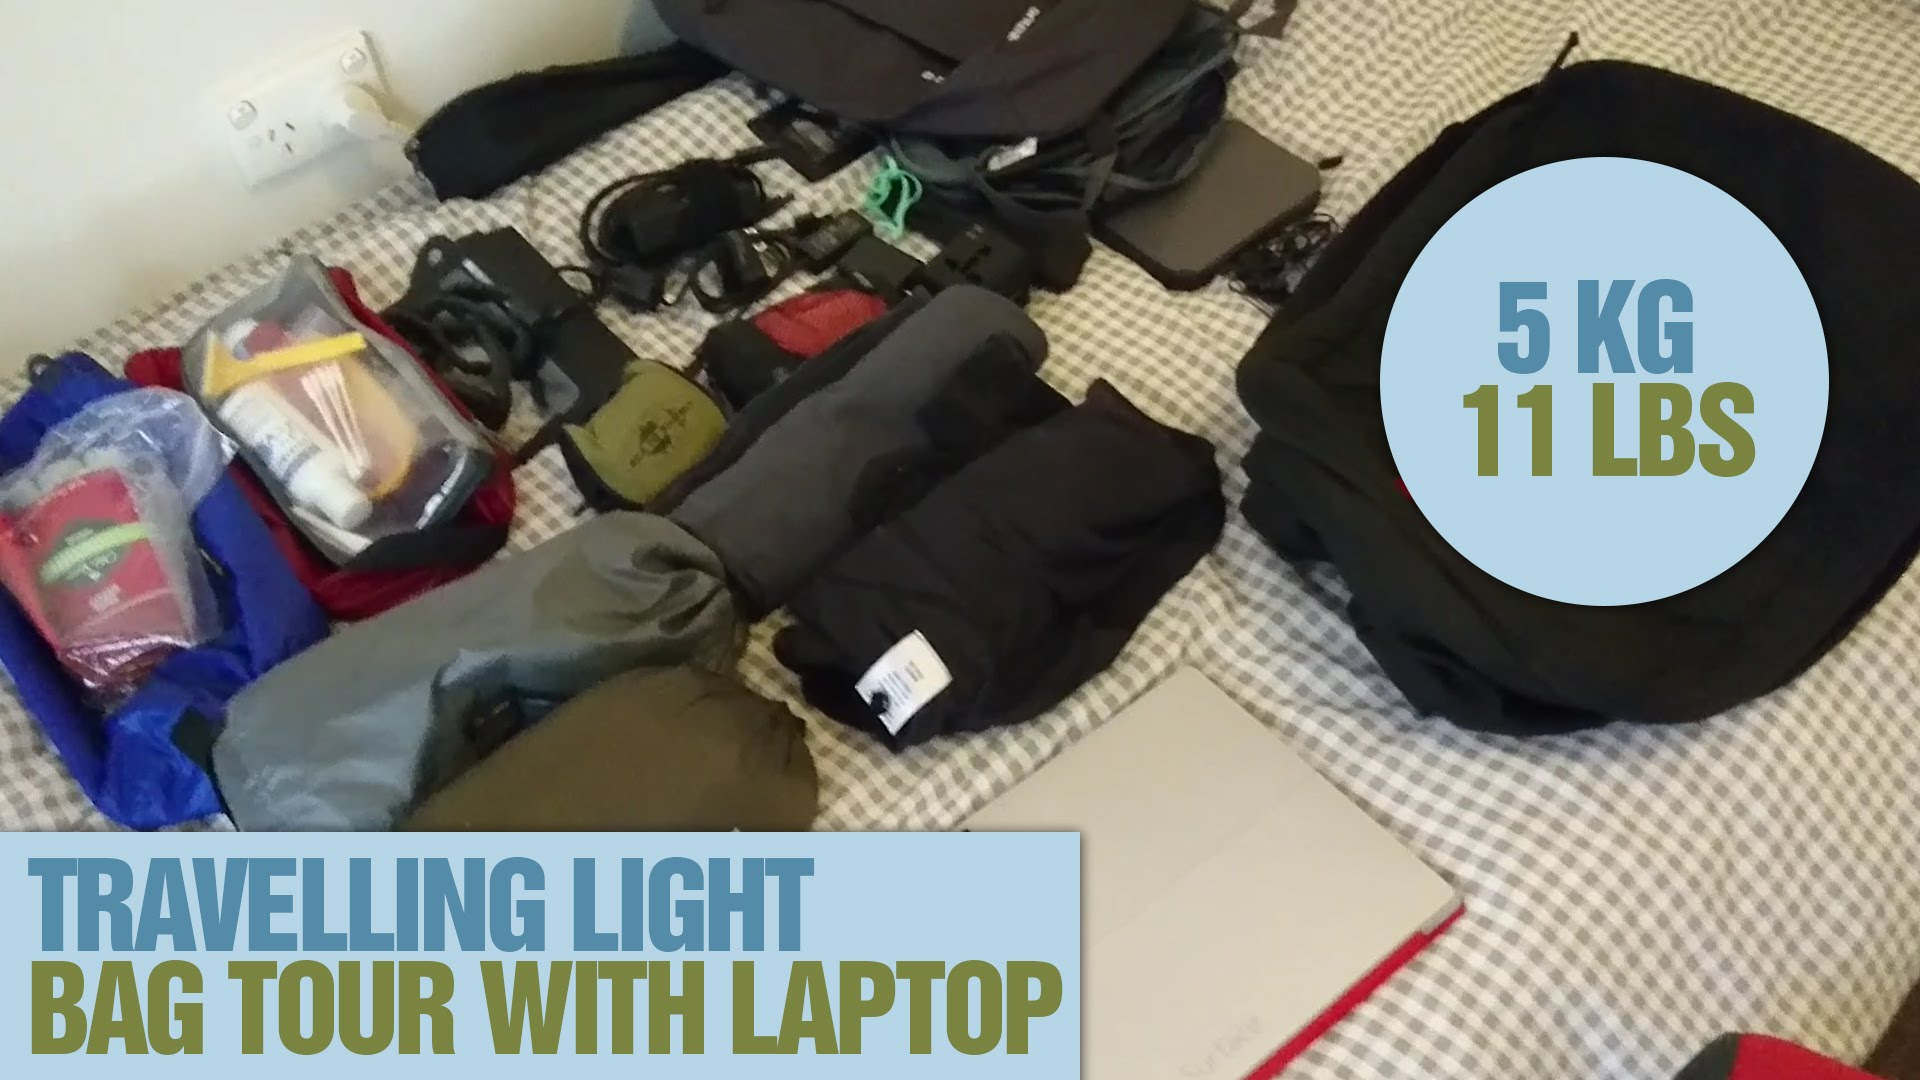 Travelling-Light-5kg-11lbs-Backpack-Tour-With-Laptop